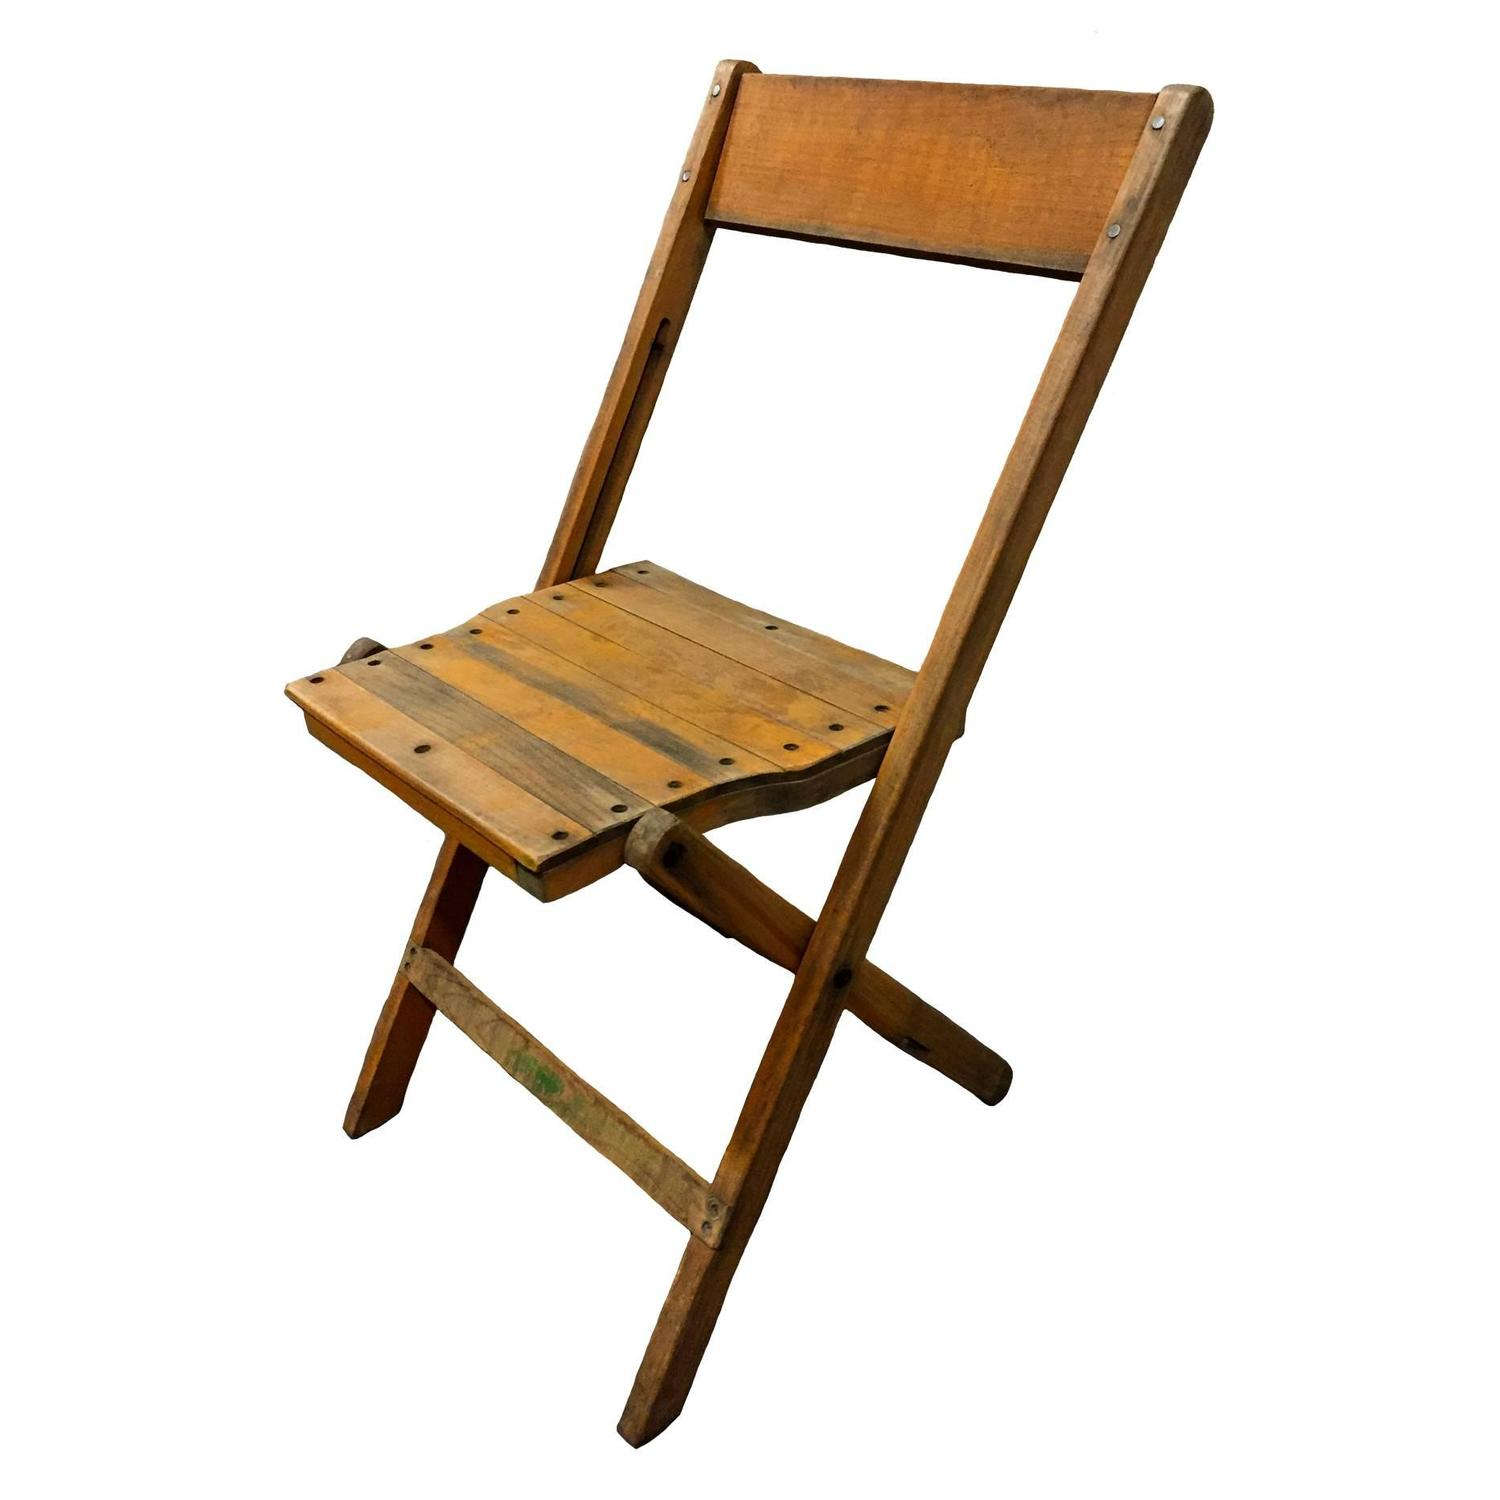 Foldable Wooden Chairs ~ Wooden folding chairs for sale at stdibs